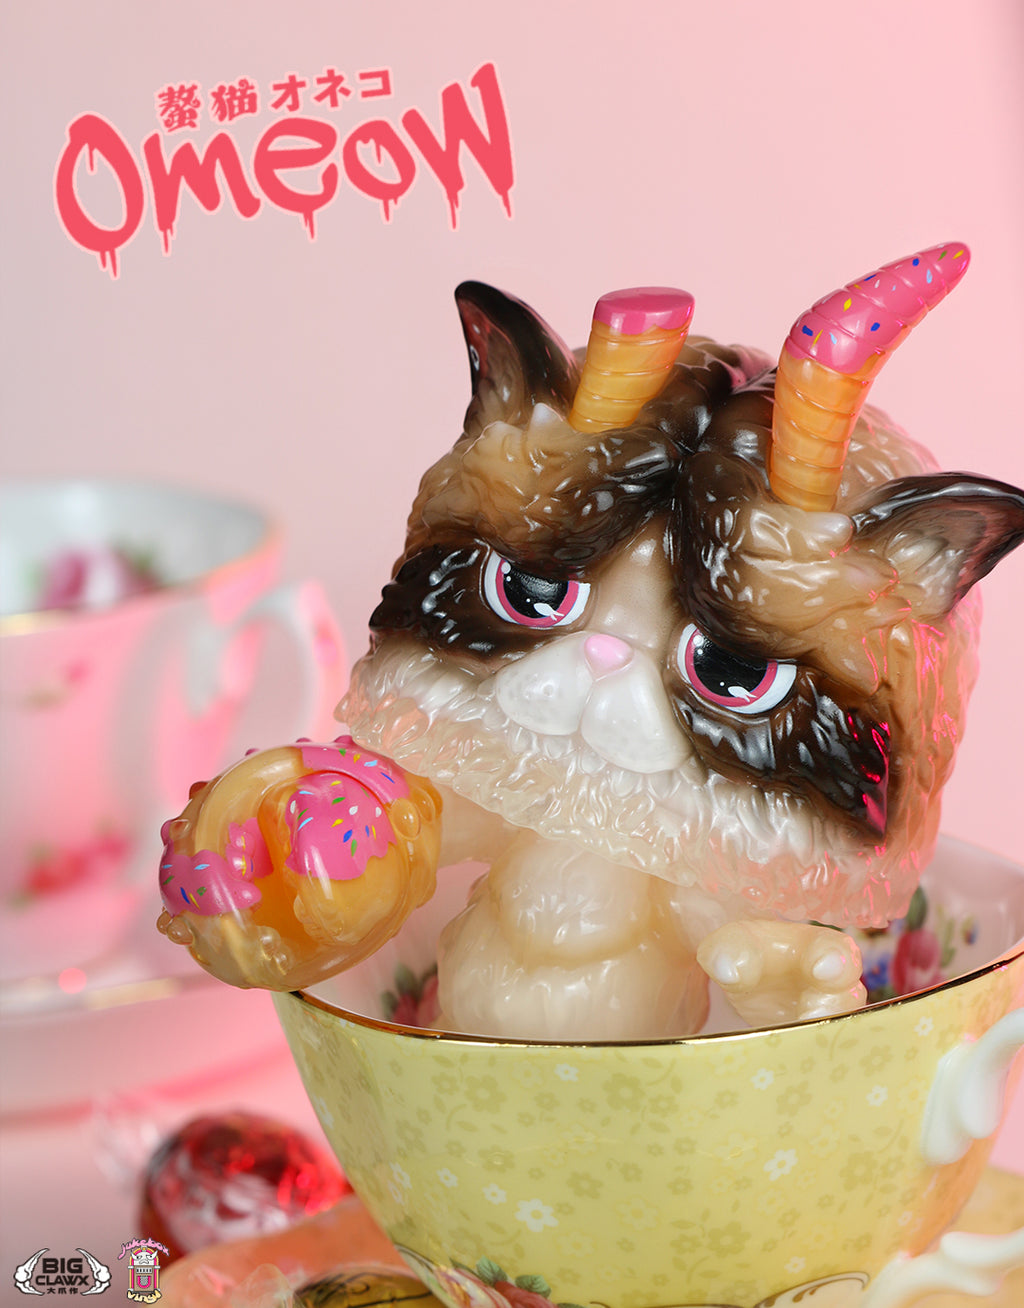 Omeow (Strawberry Donut Ver.)